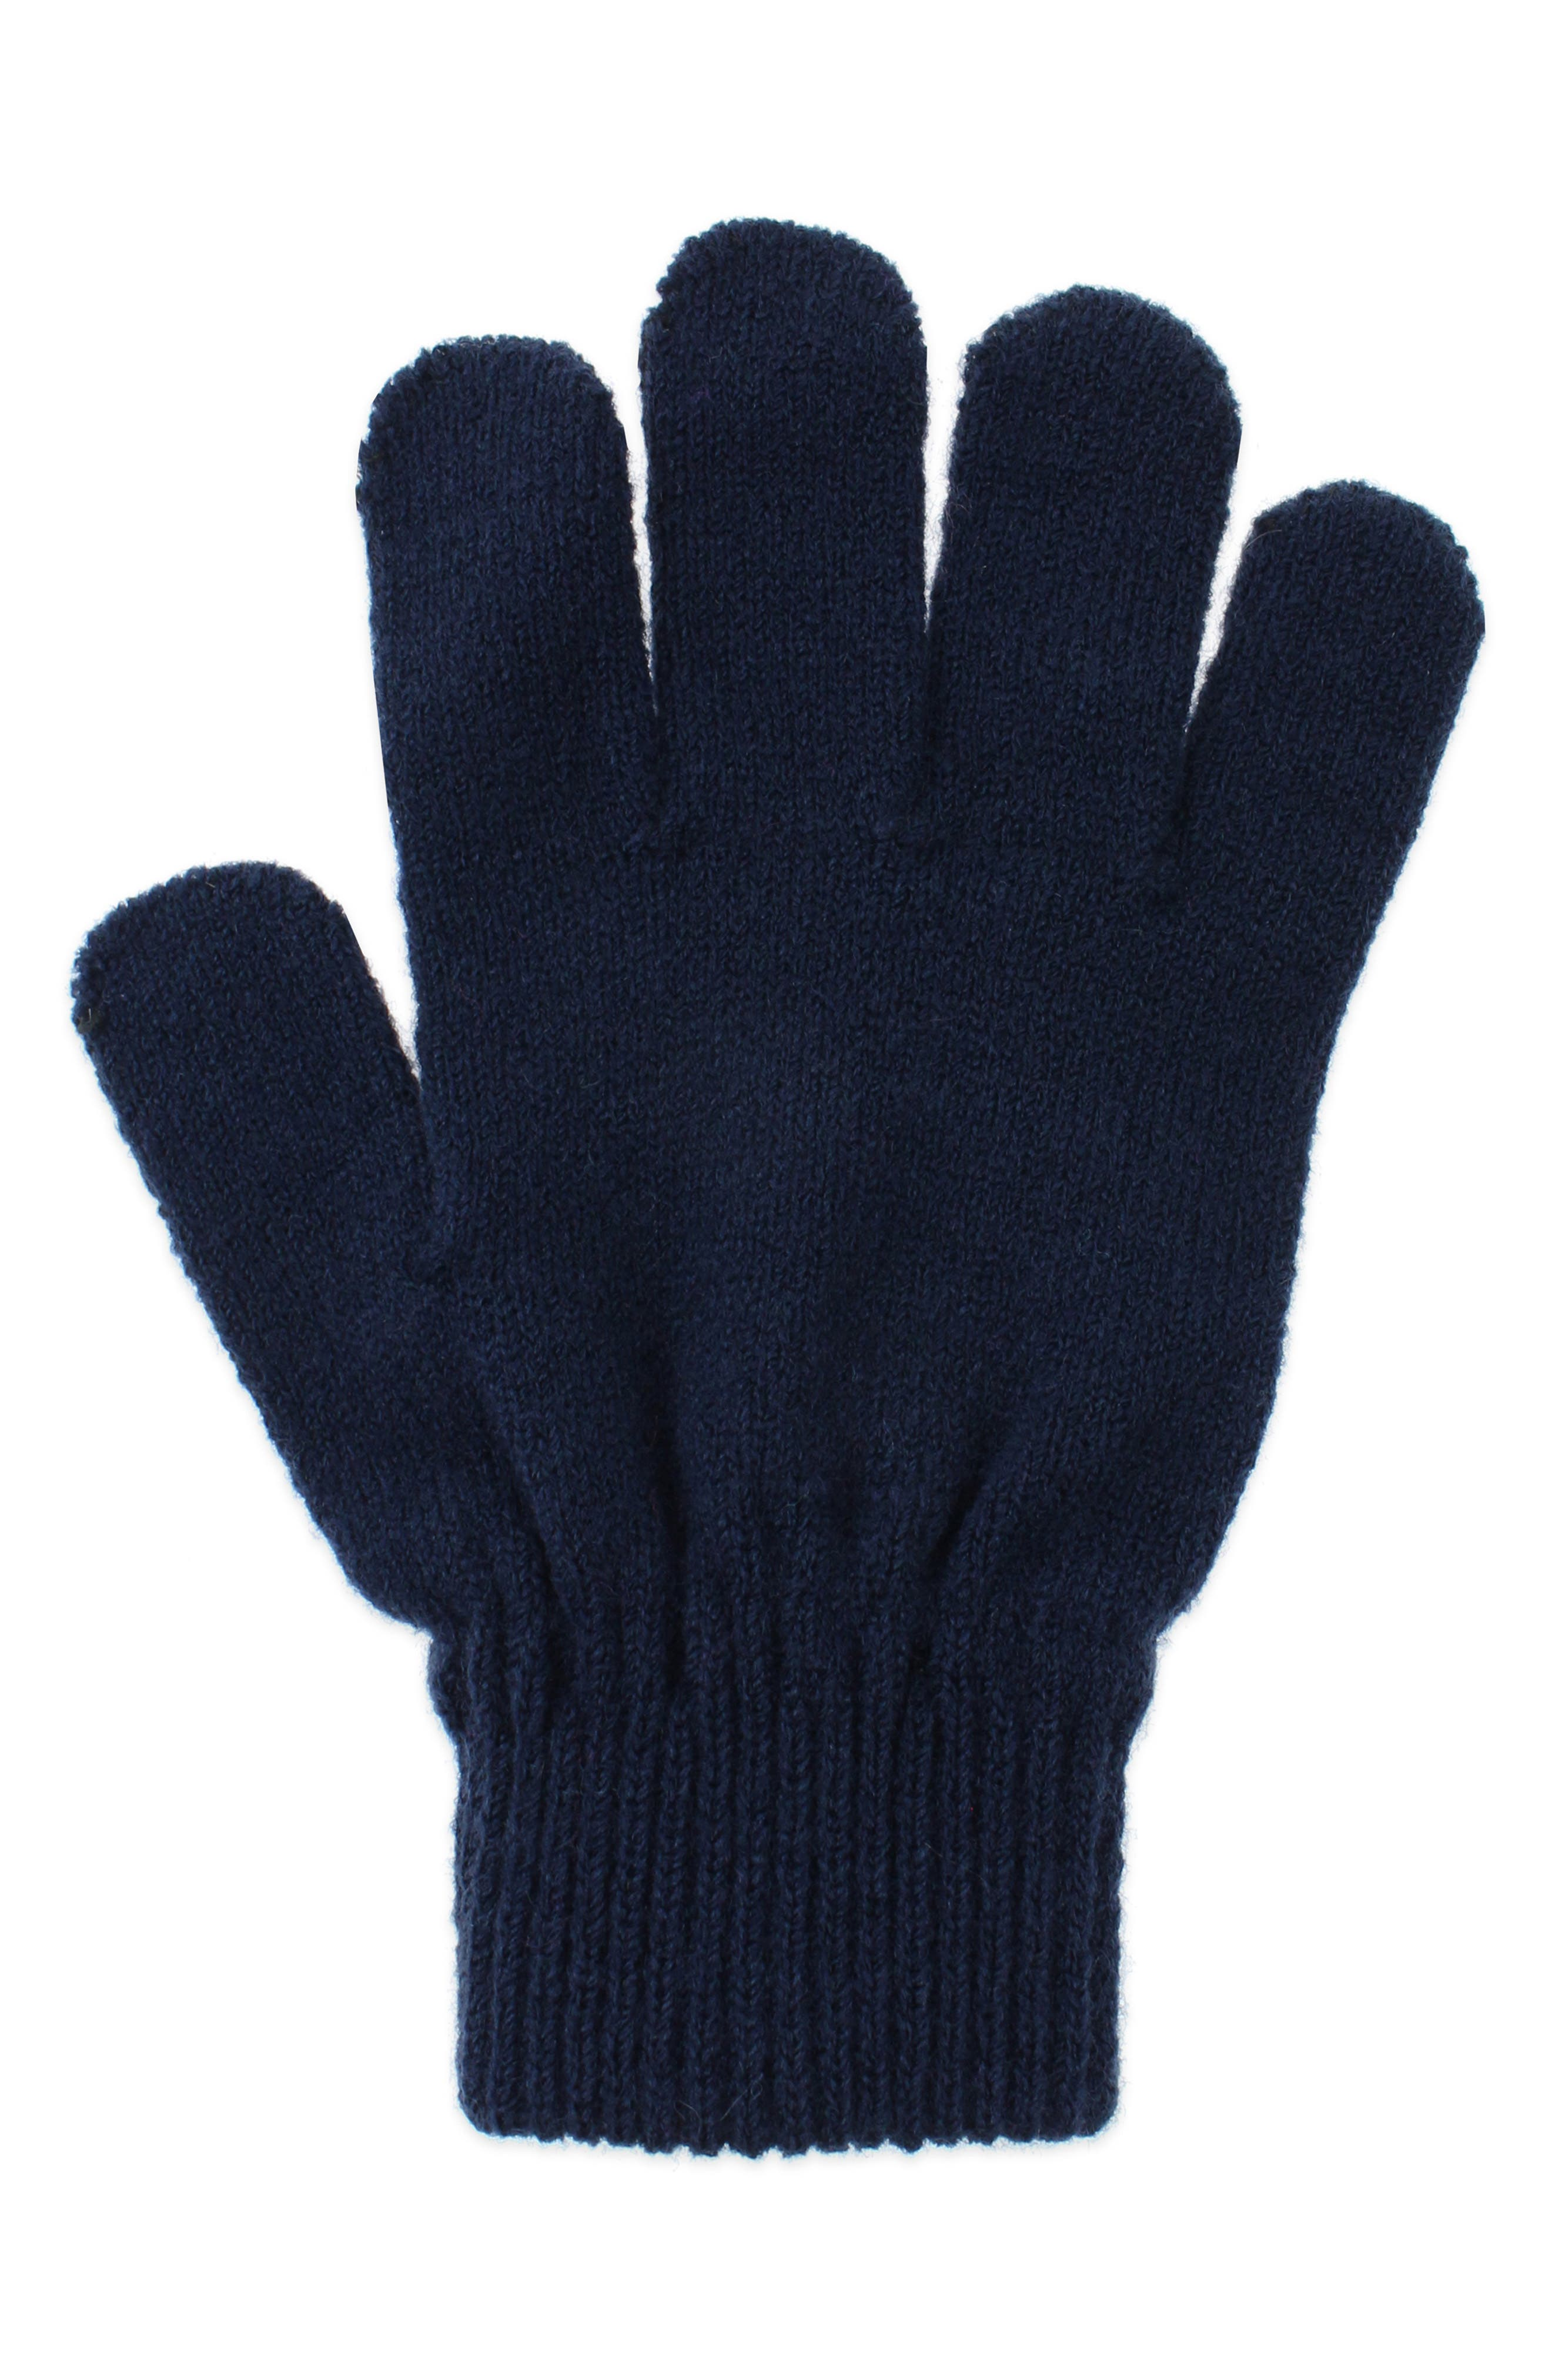 Space Dyed Earflap Hat & Gloves Set,                             Alternate thumbnail 4, color,                             NAVY COMBO